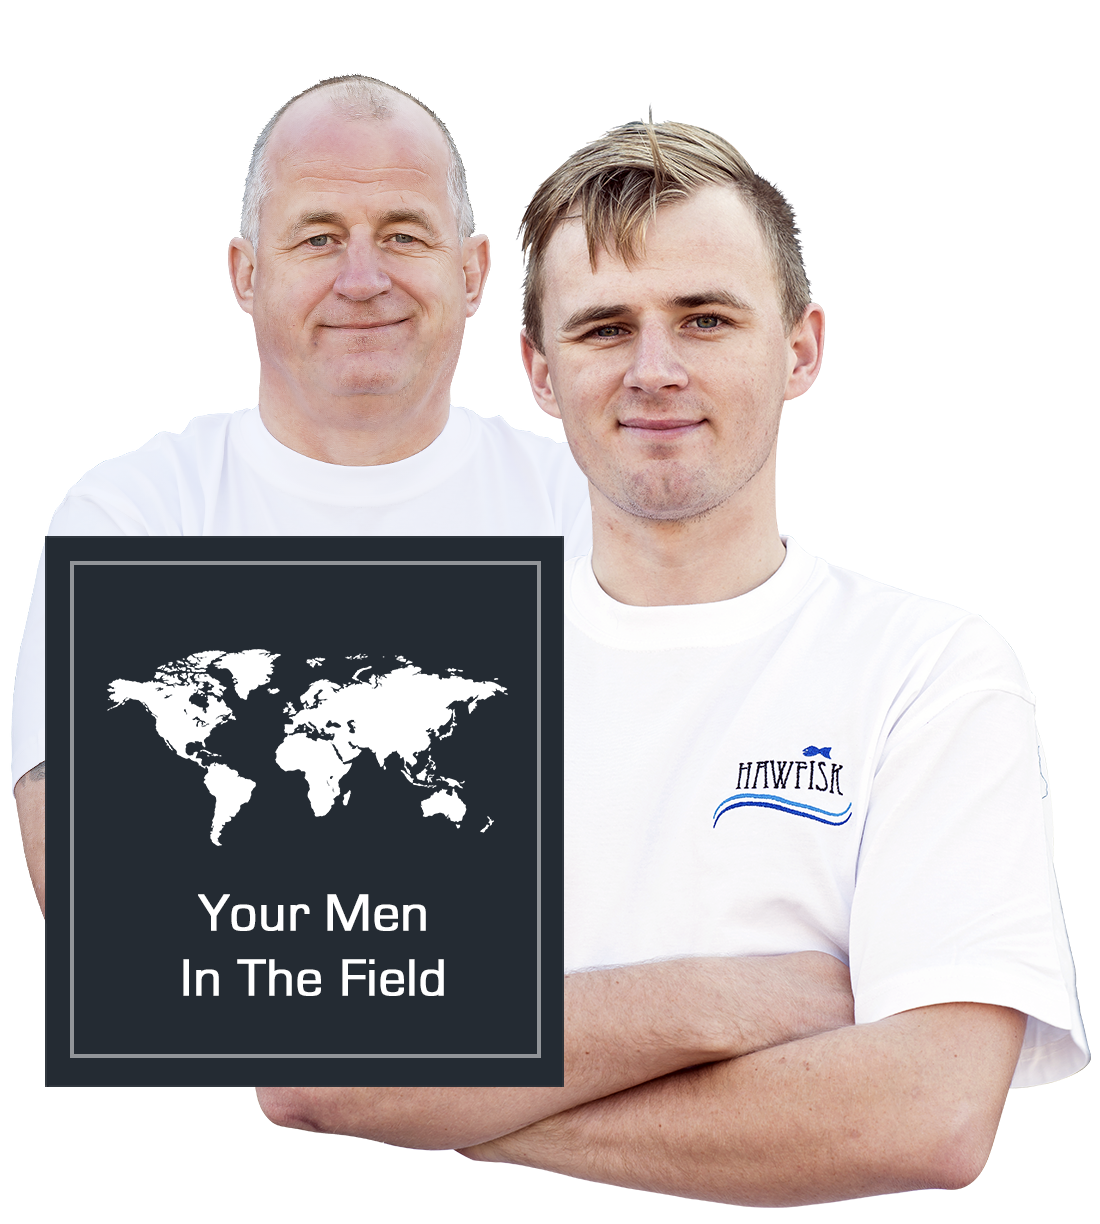 Your Men In The Field